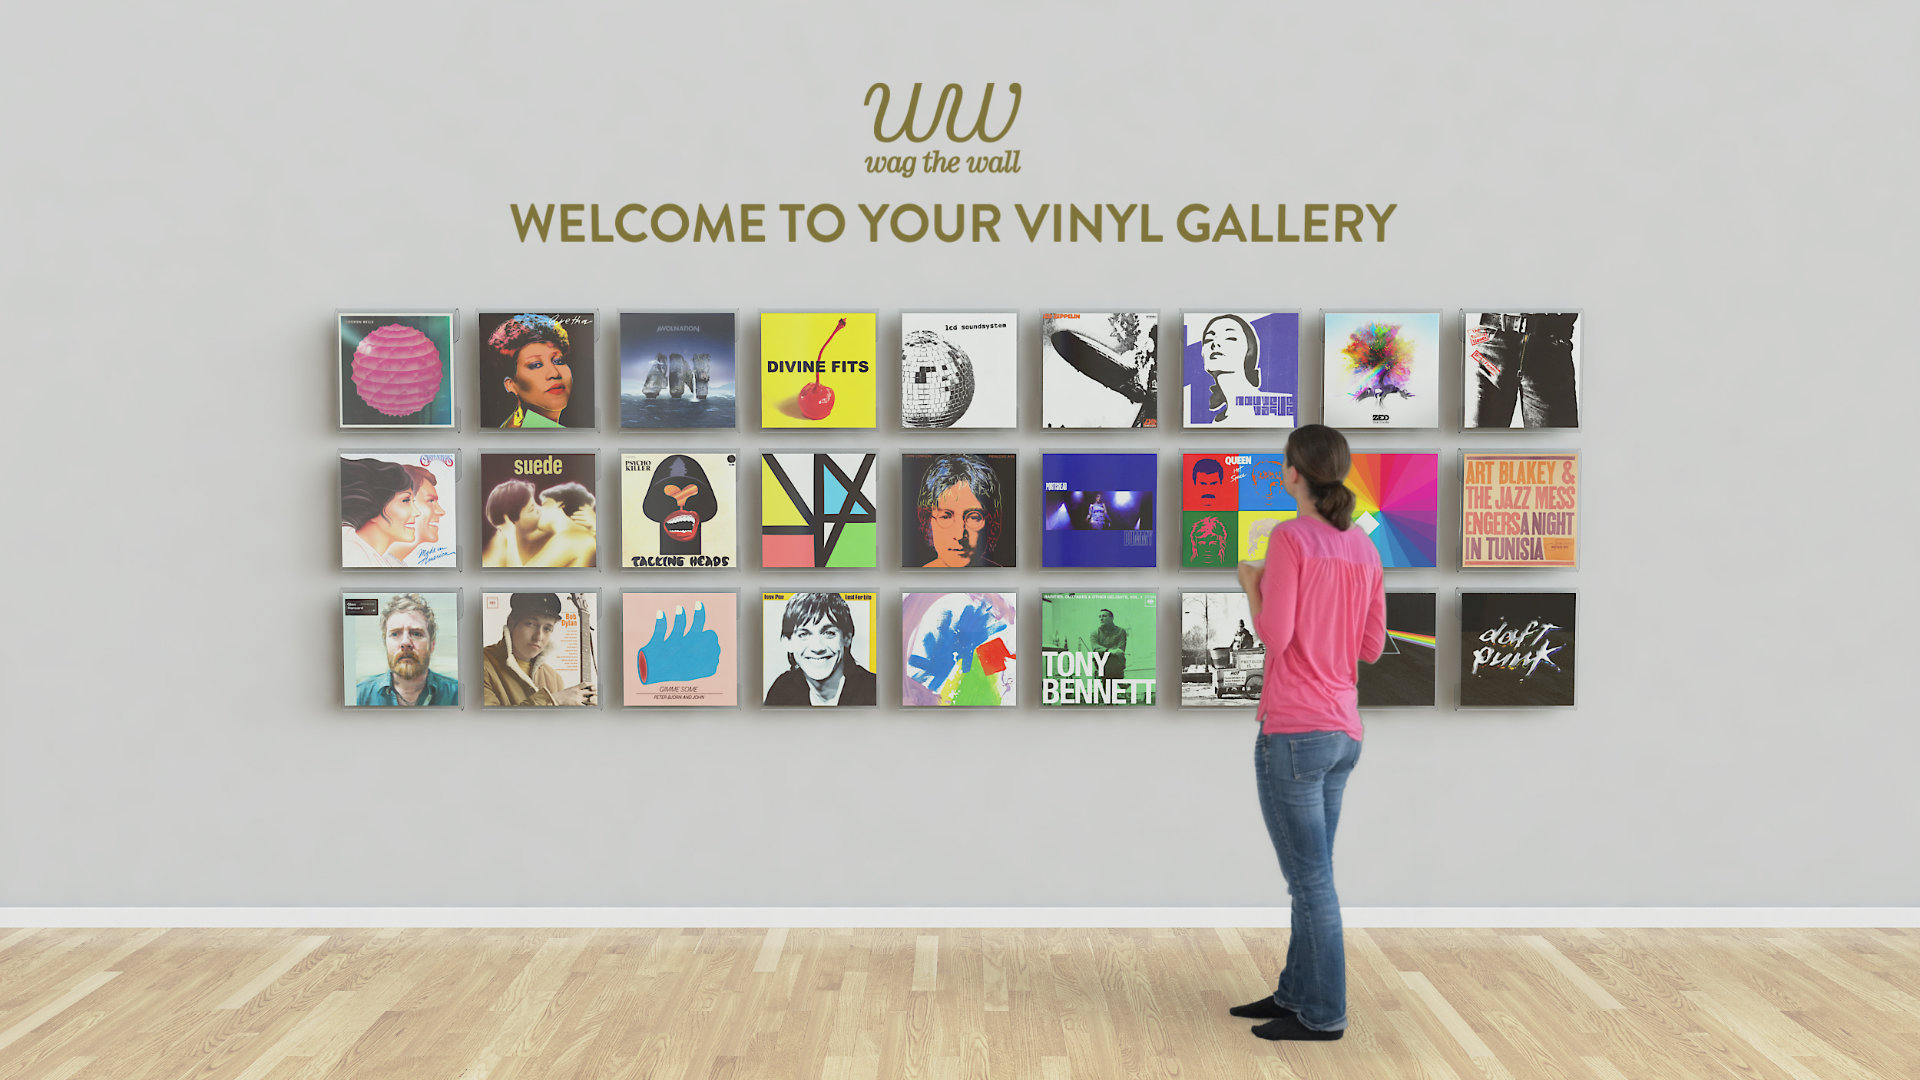 Welcome to your Vinyl Gallery